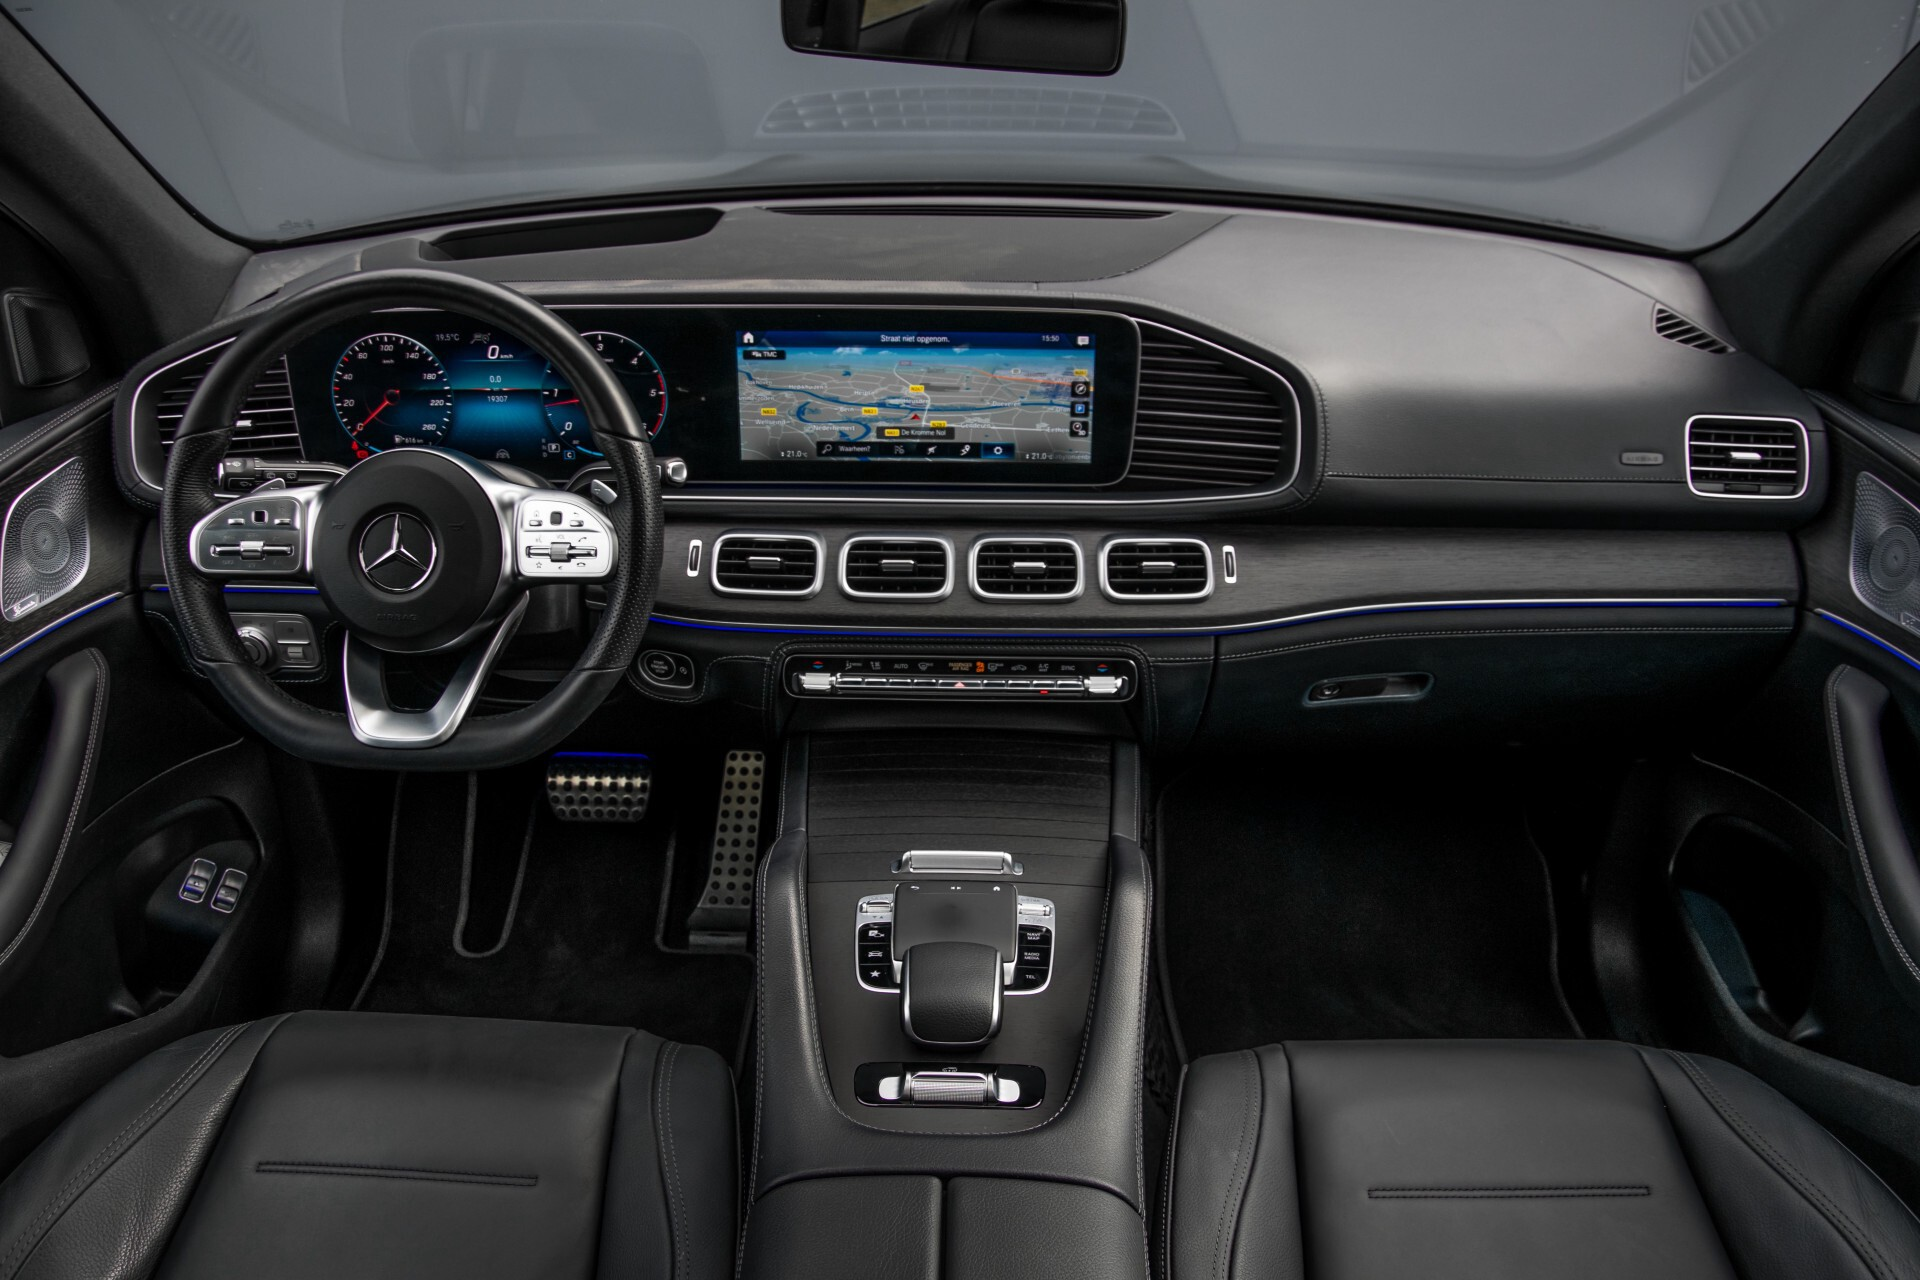 Mercedes-Benz GLE 400 d 4-M Luchtvering/Distronic/Keyless/HUD/Burmester/Nappa/360 camera/Panorama Aut9 Foto 8